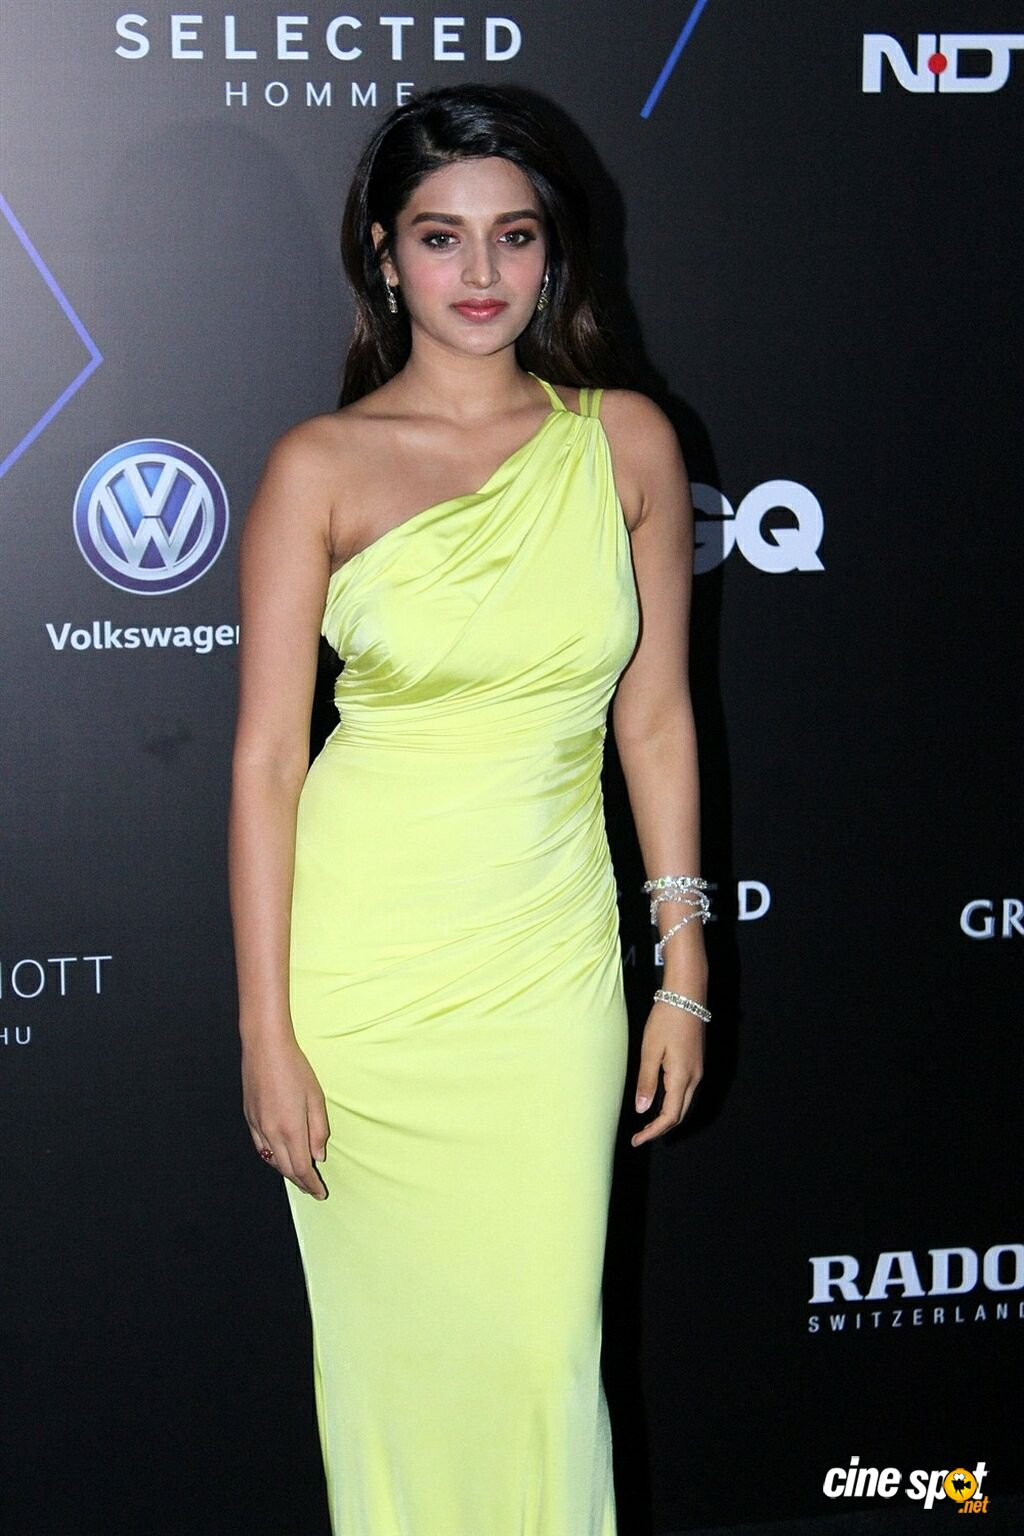 Nidhhi Agerwal at GQ Best Dressed Awards 2019 Red Carpet (3)